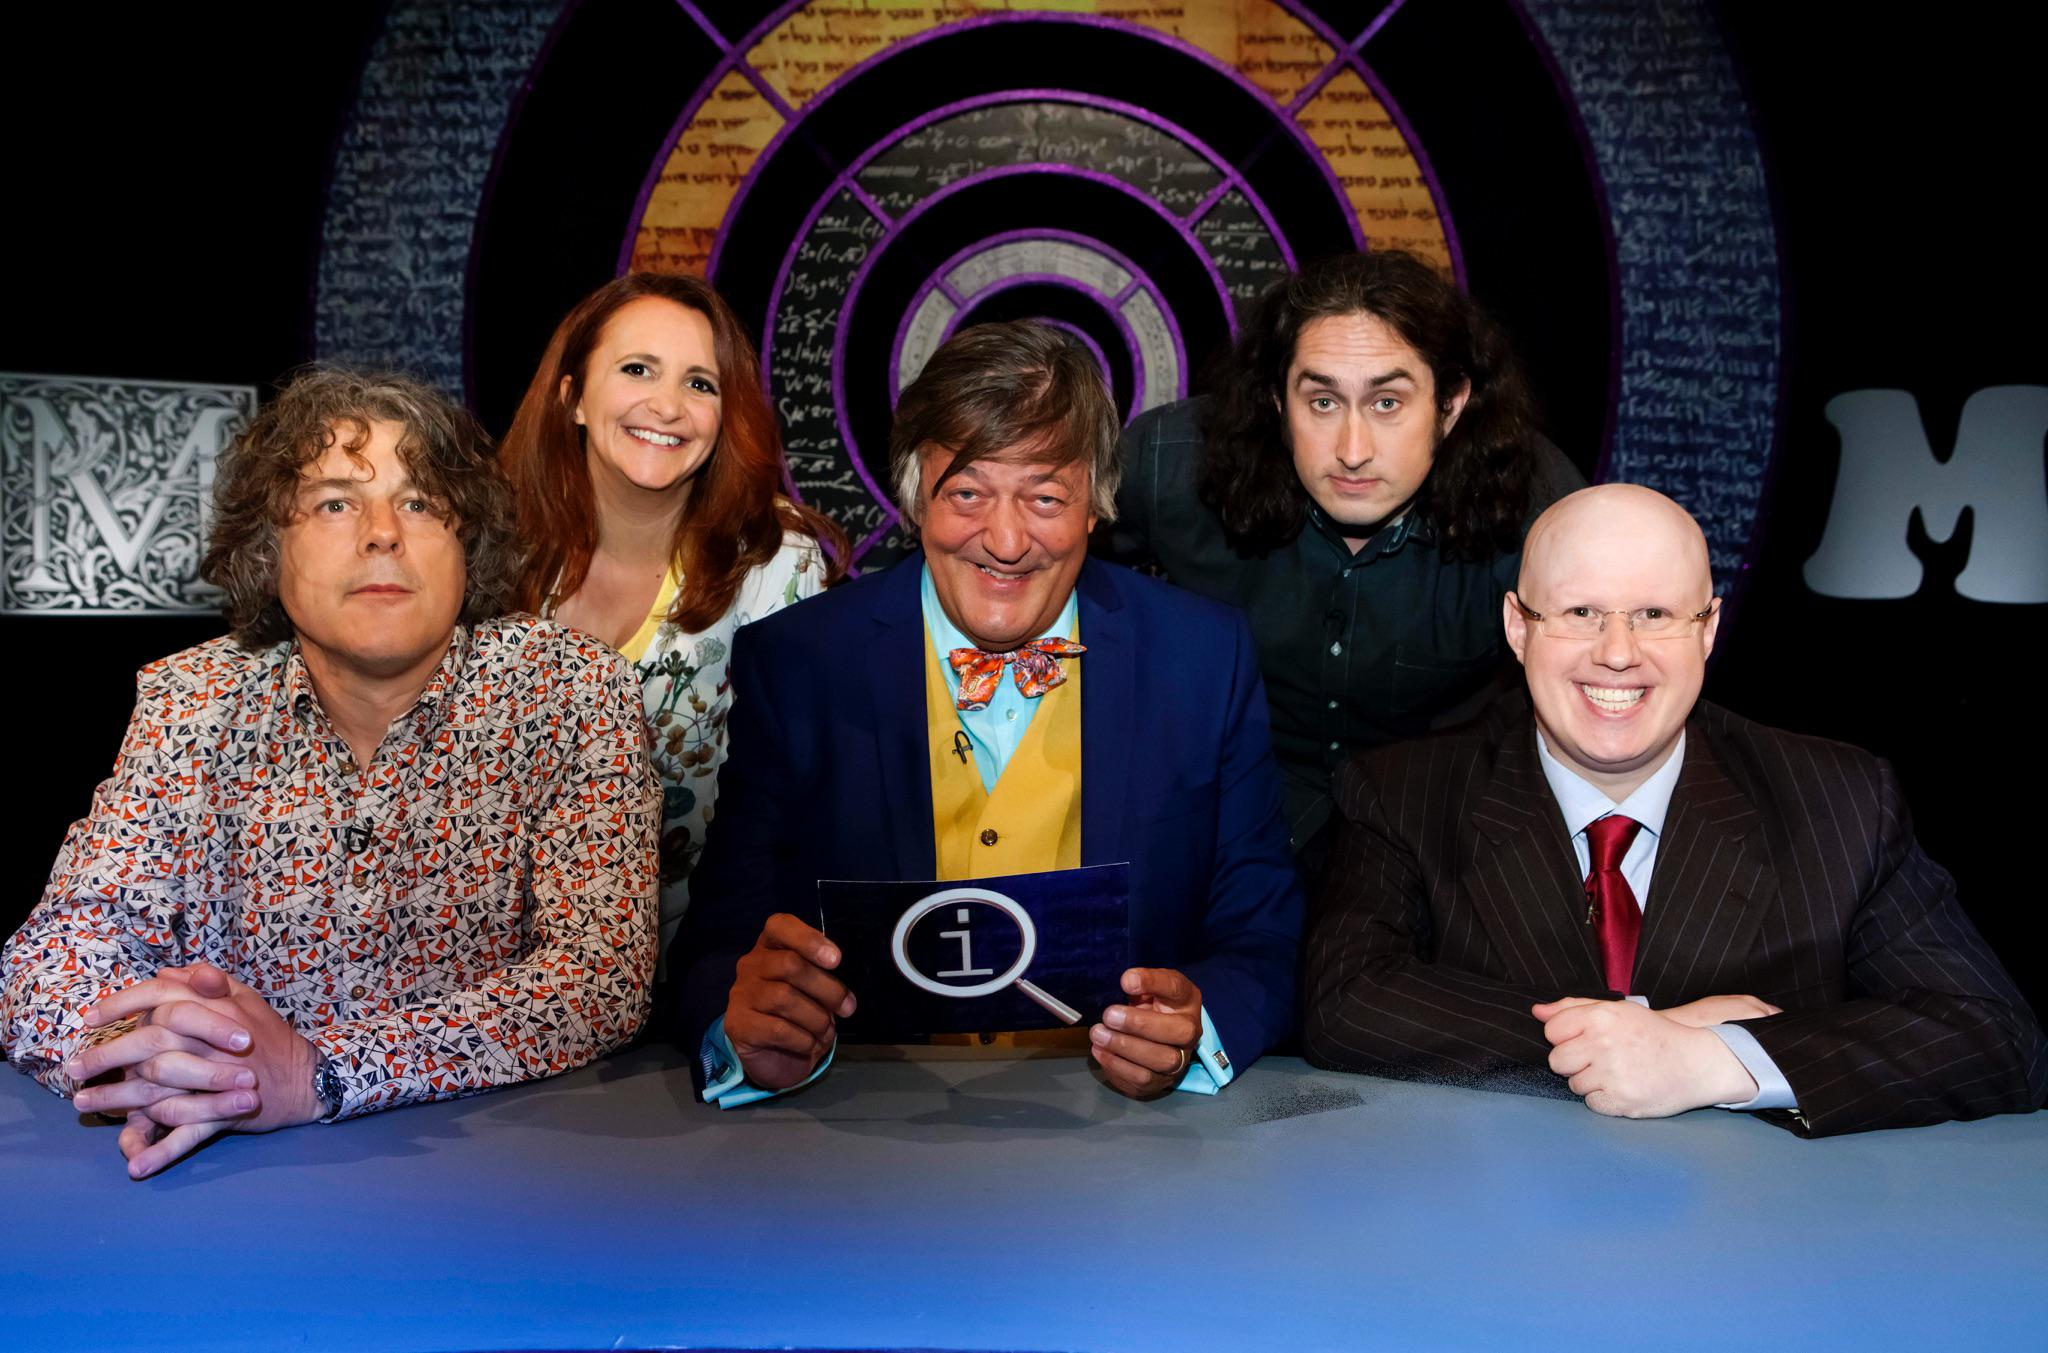 None of which lets you all off the hook, I'm afraid. Friday, 10 pm BBC 2 (QIXL Sat) the new M series begins. #QI http://t.co/l0pmsKhXP5